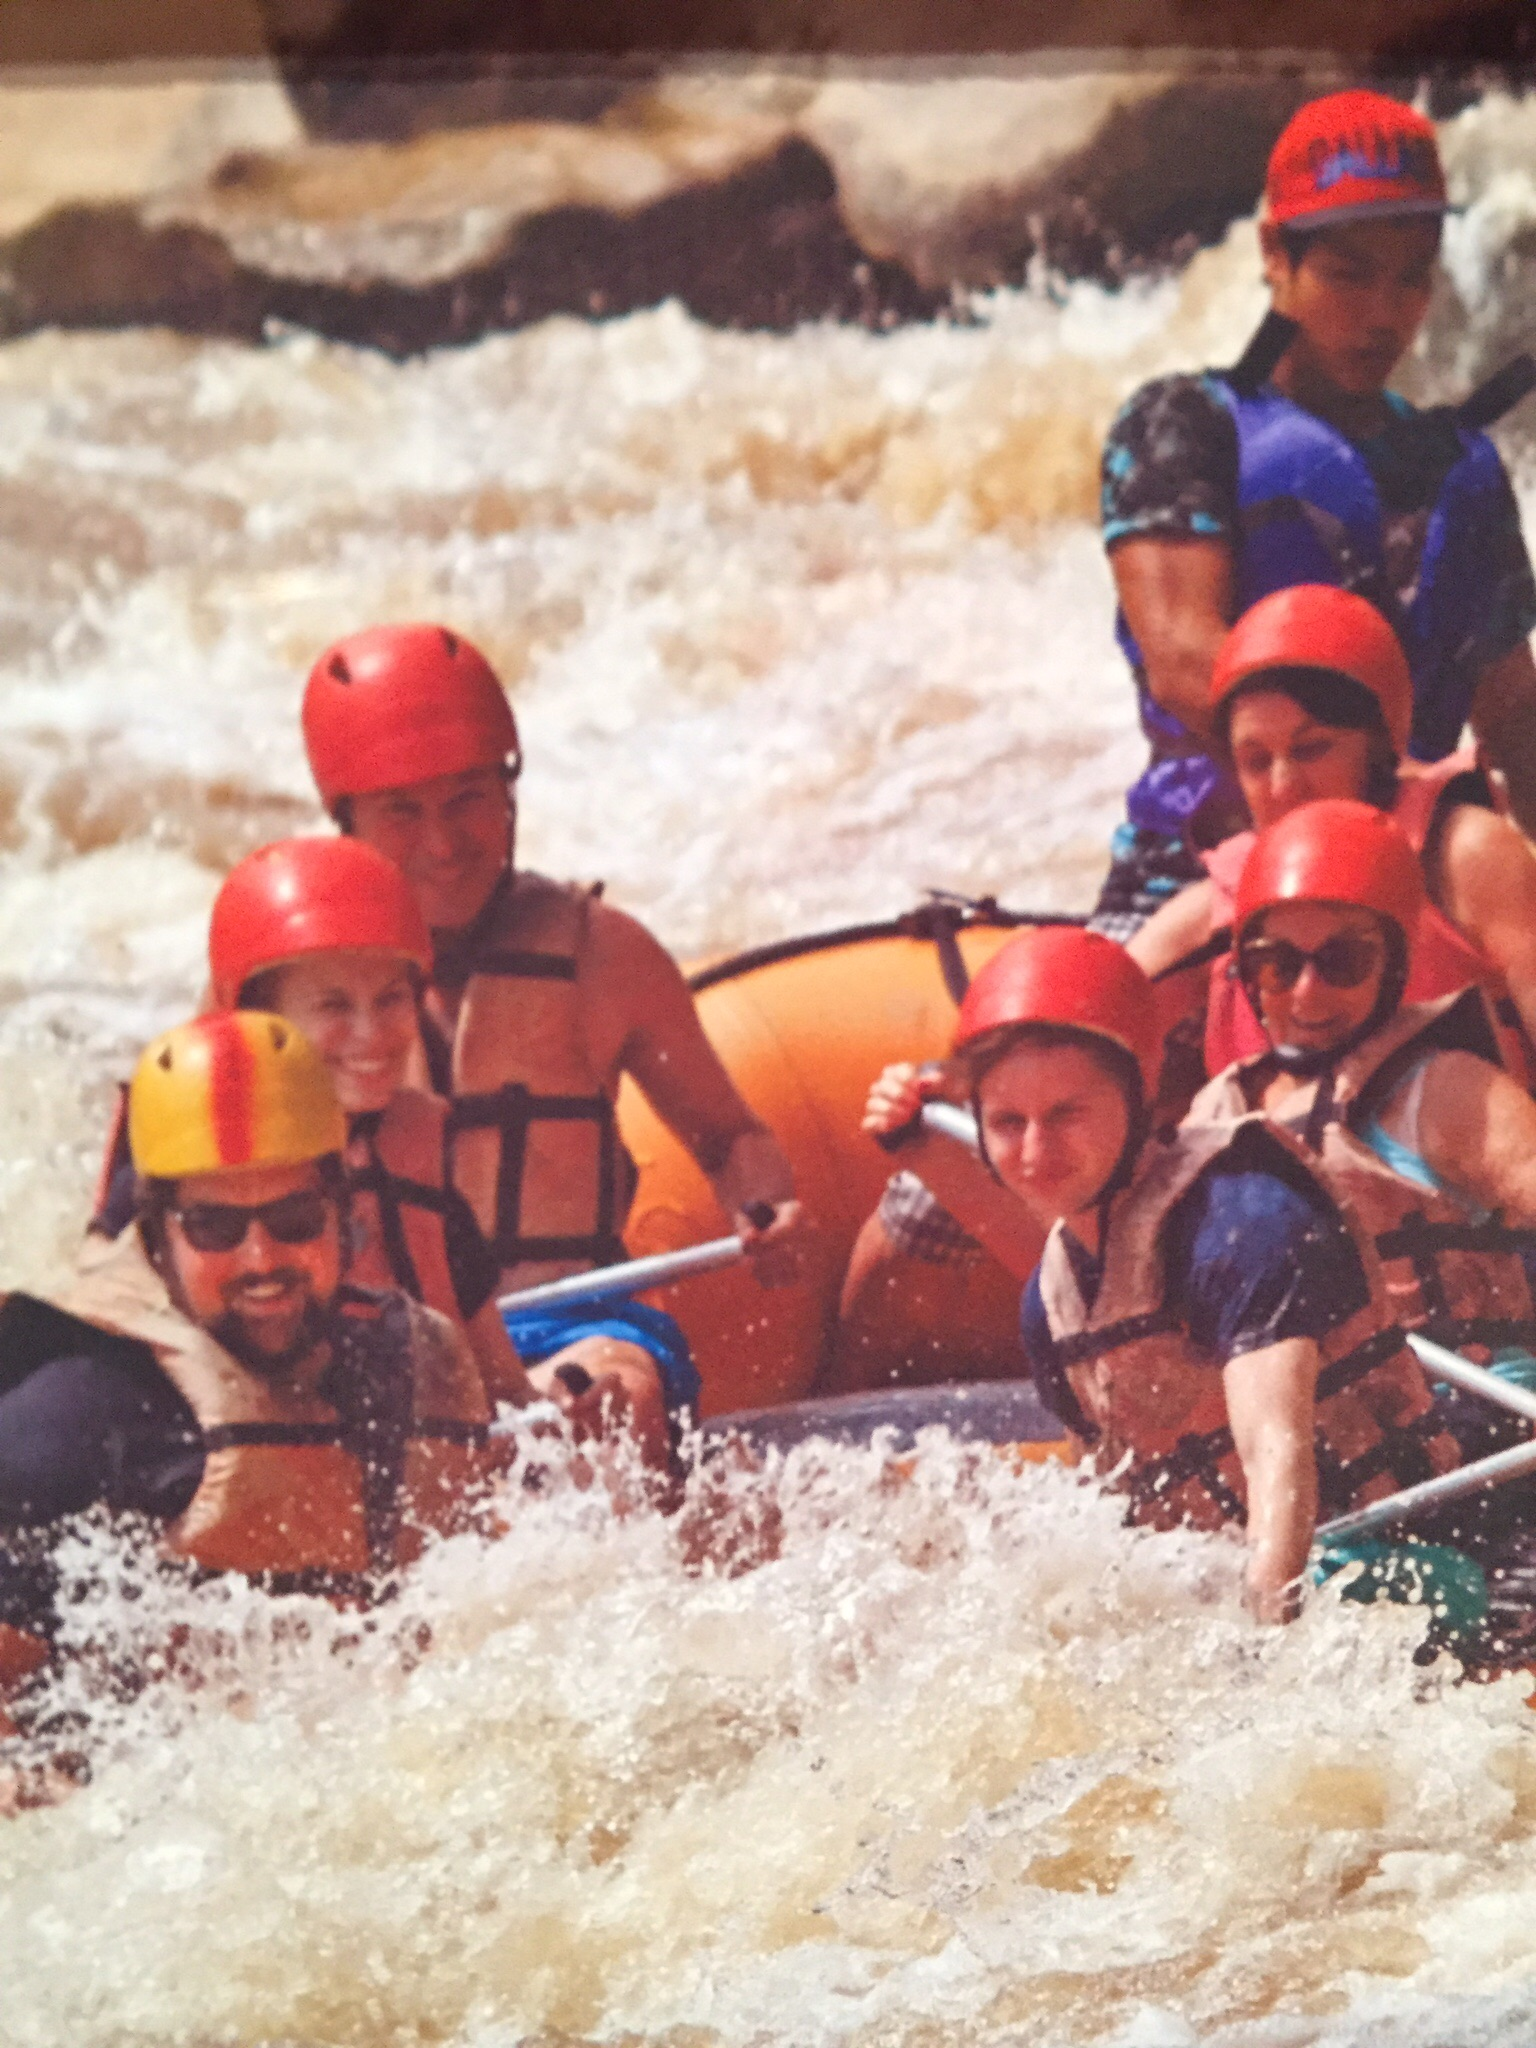 Obligatory white water action shot I pirated from the tour company.